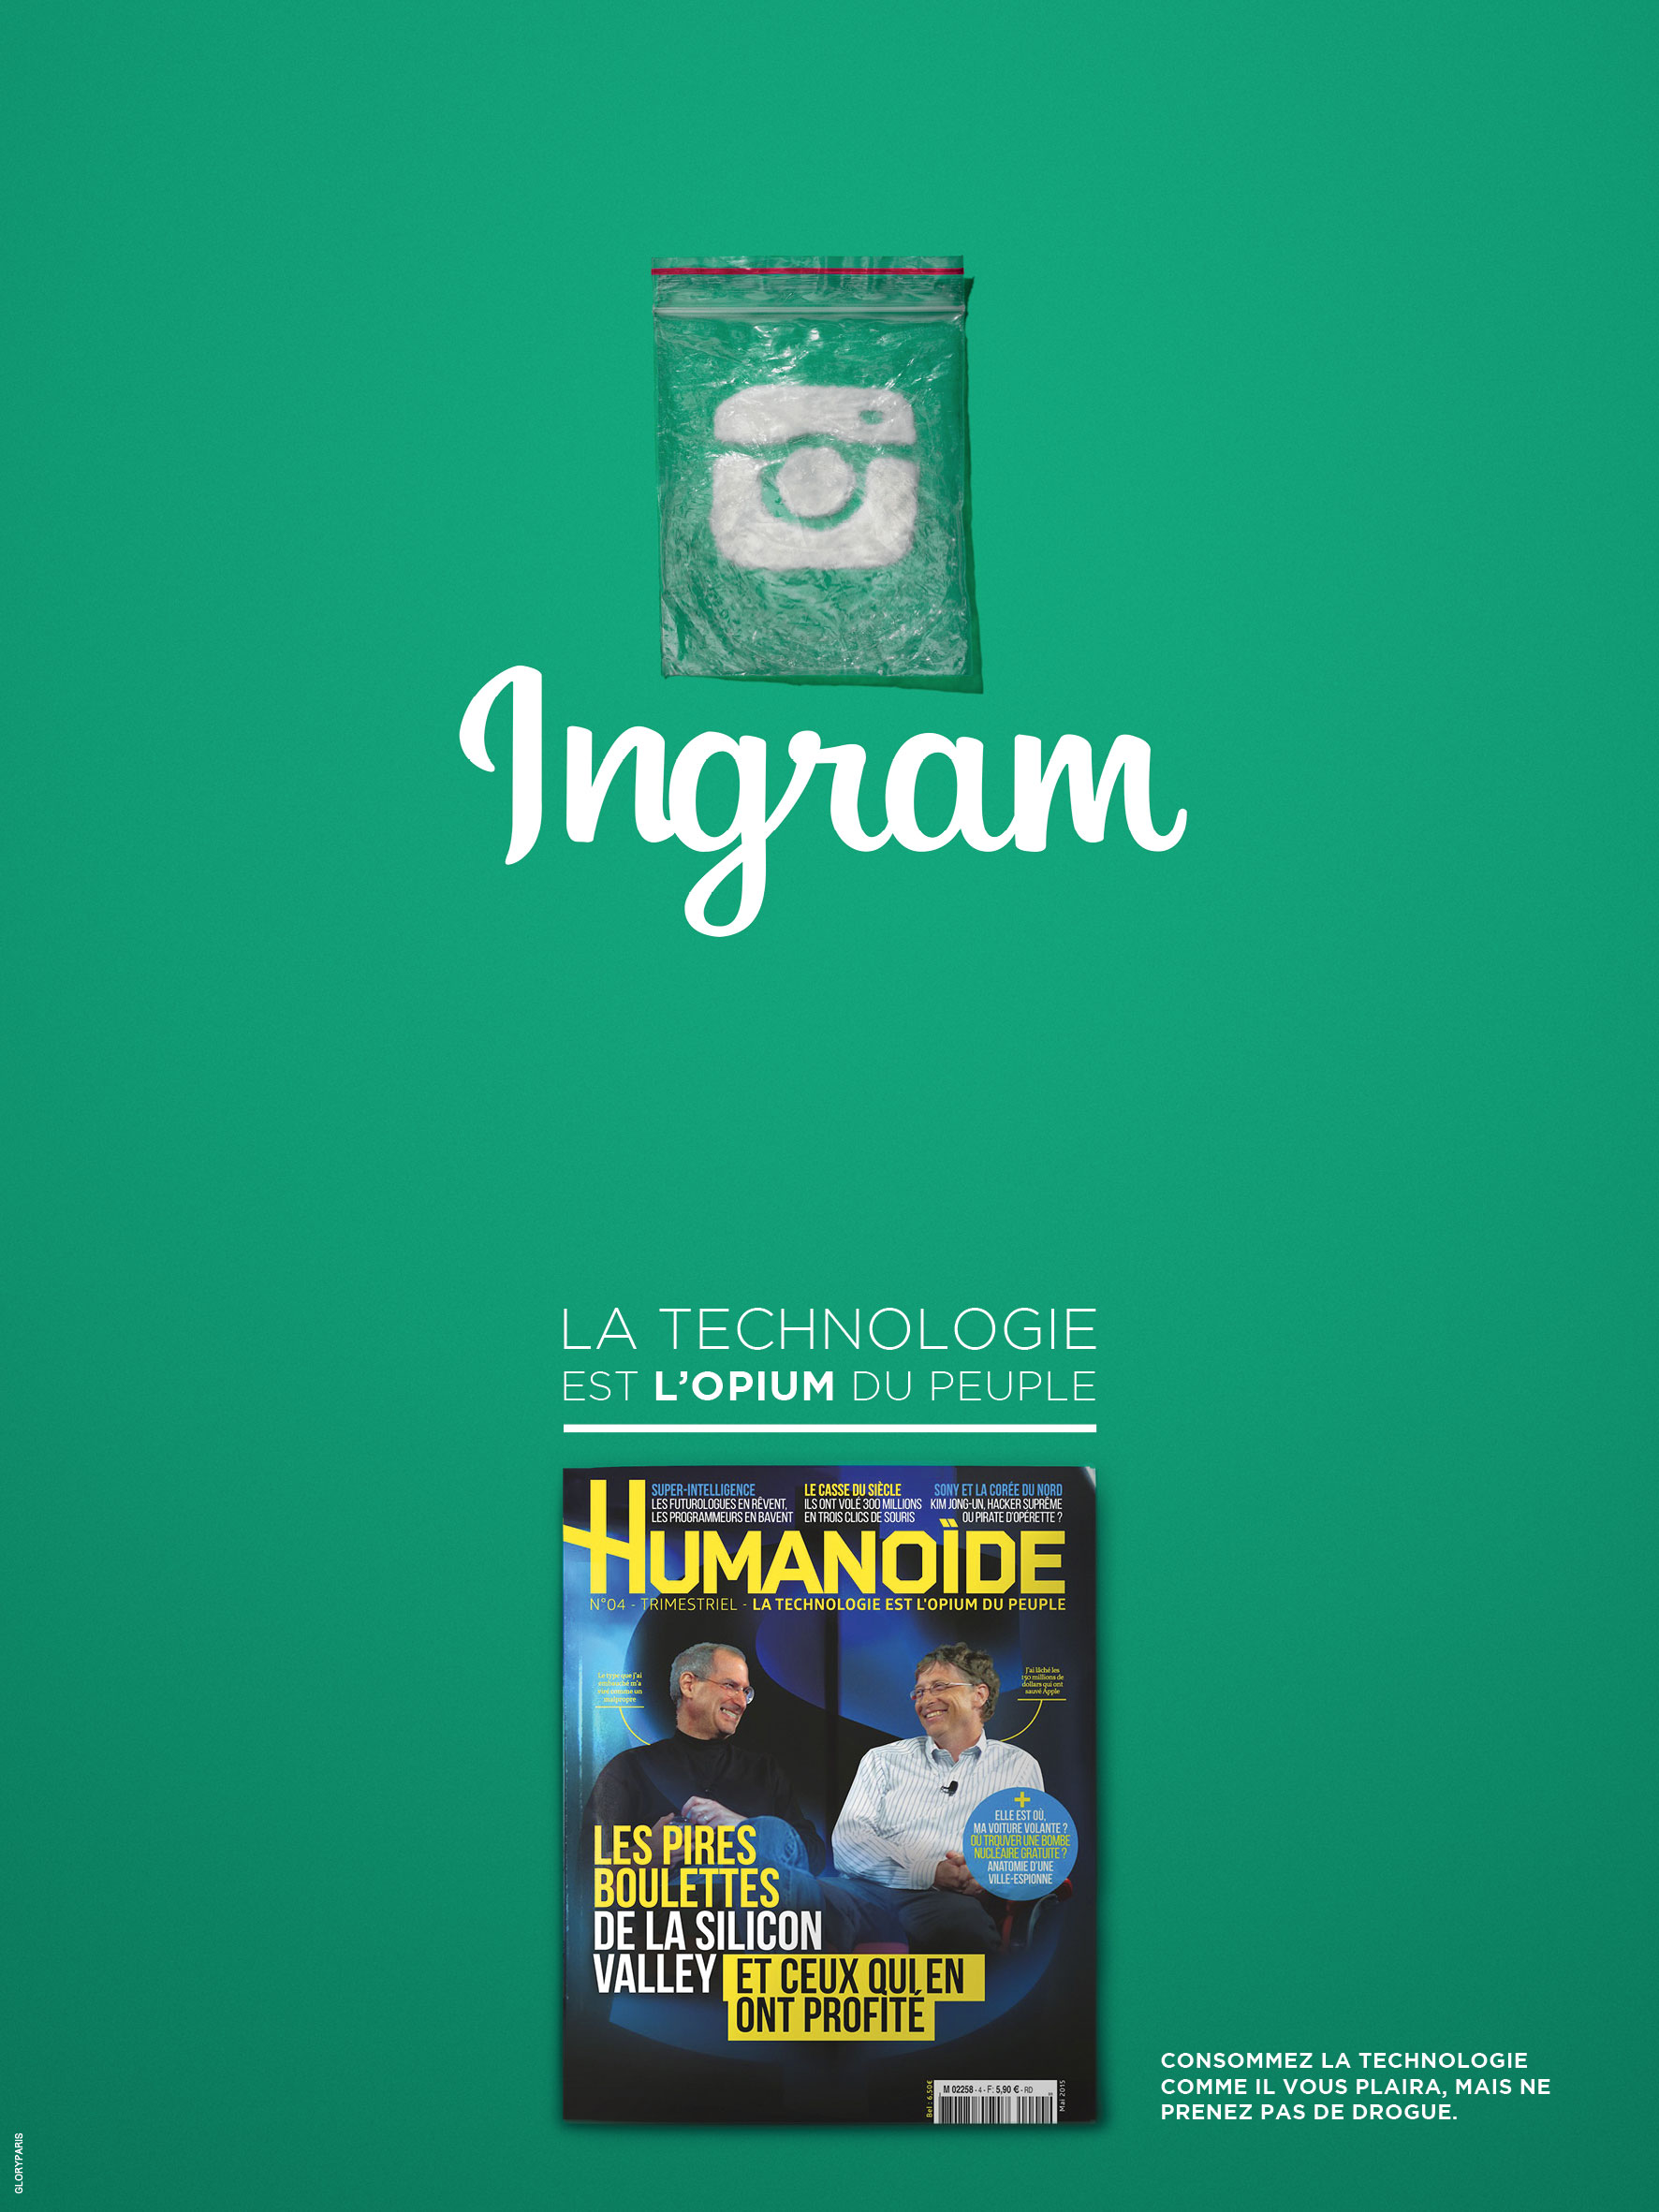 dans-ta-pub-humanoide-print-publicité-affiche-technologie-web-drogue-addiction-digital-3